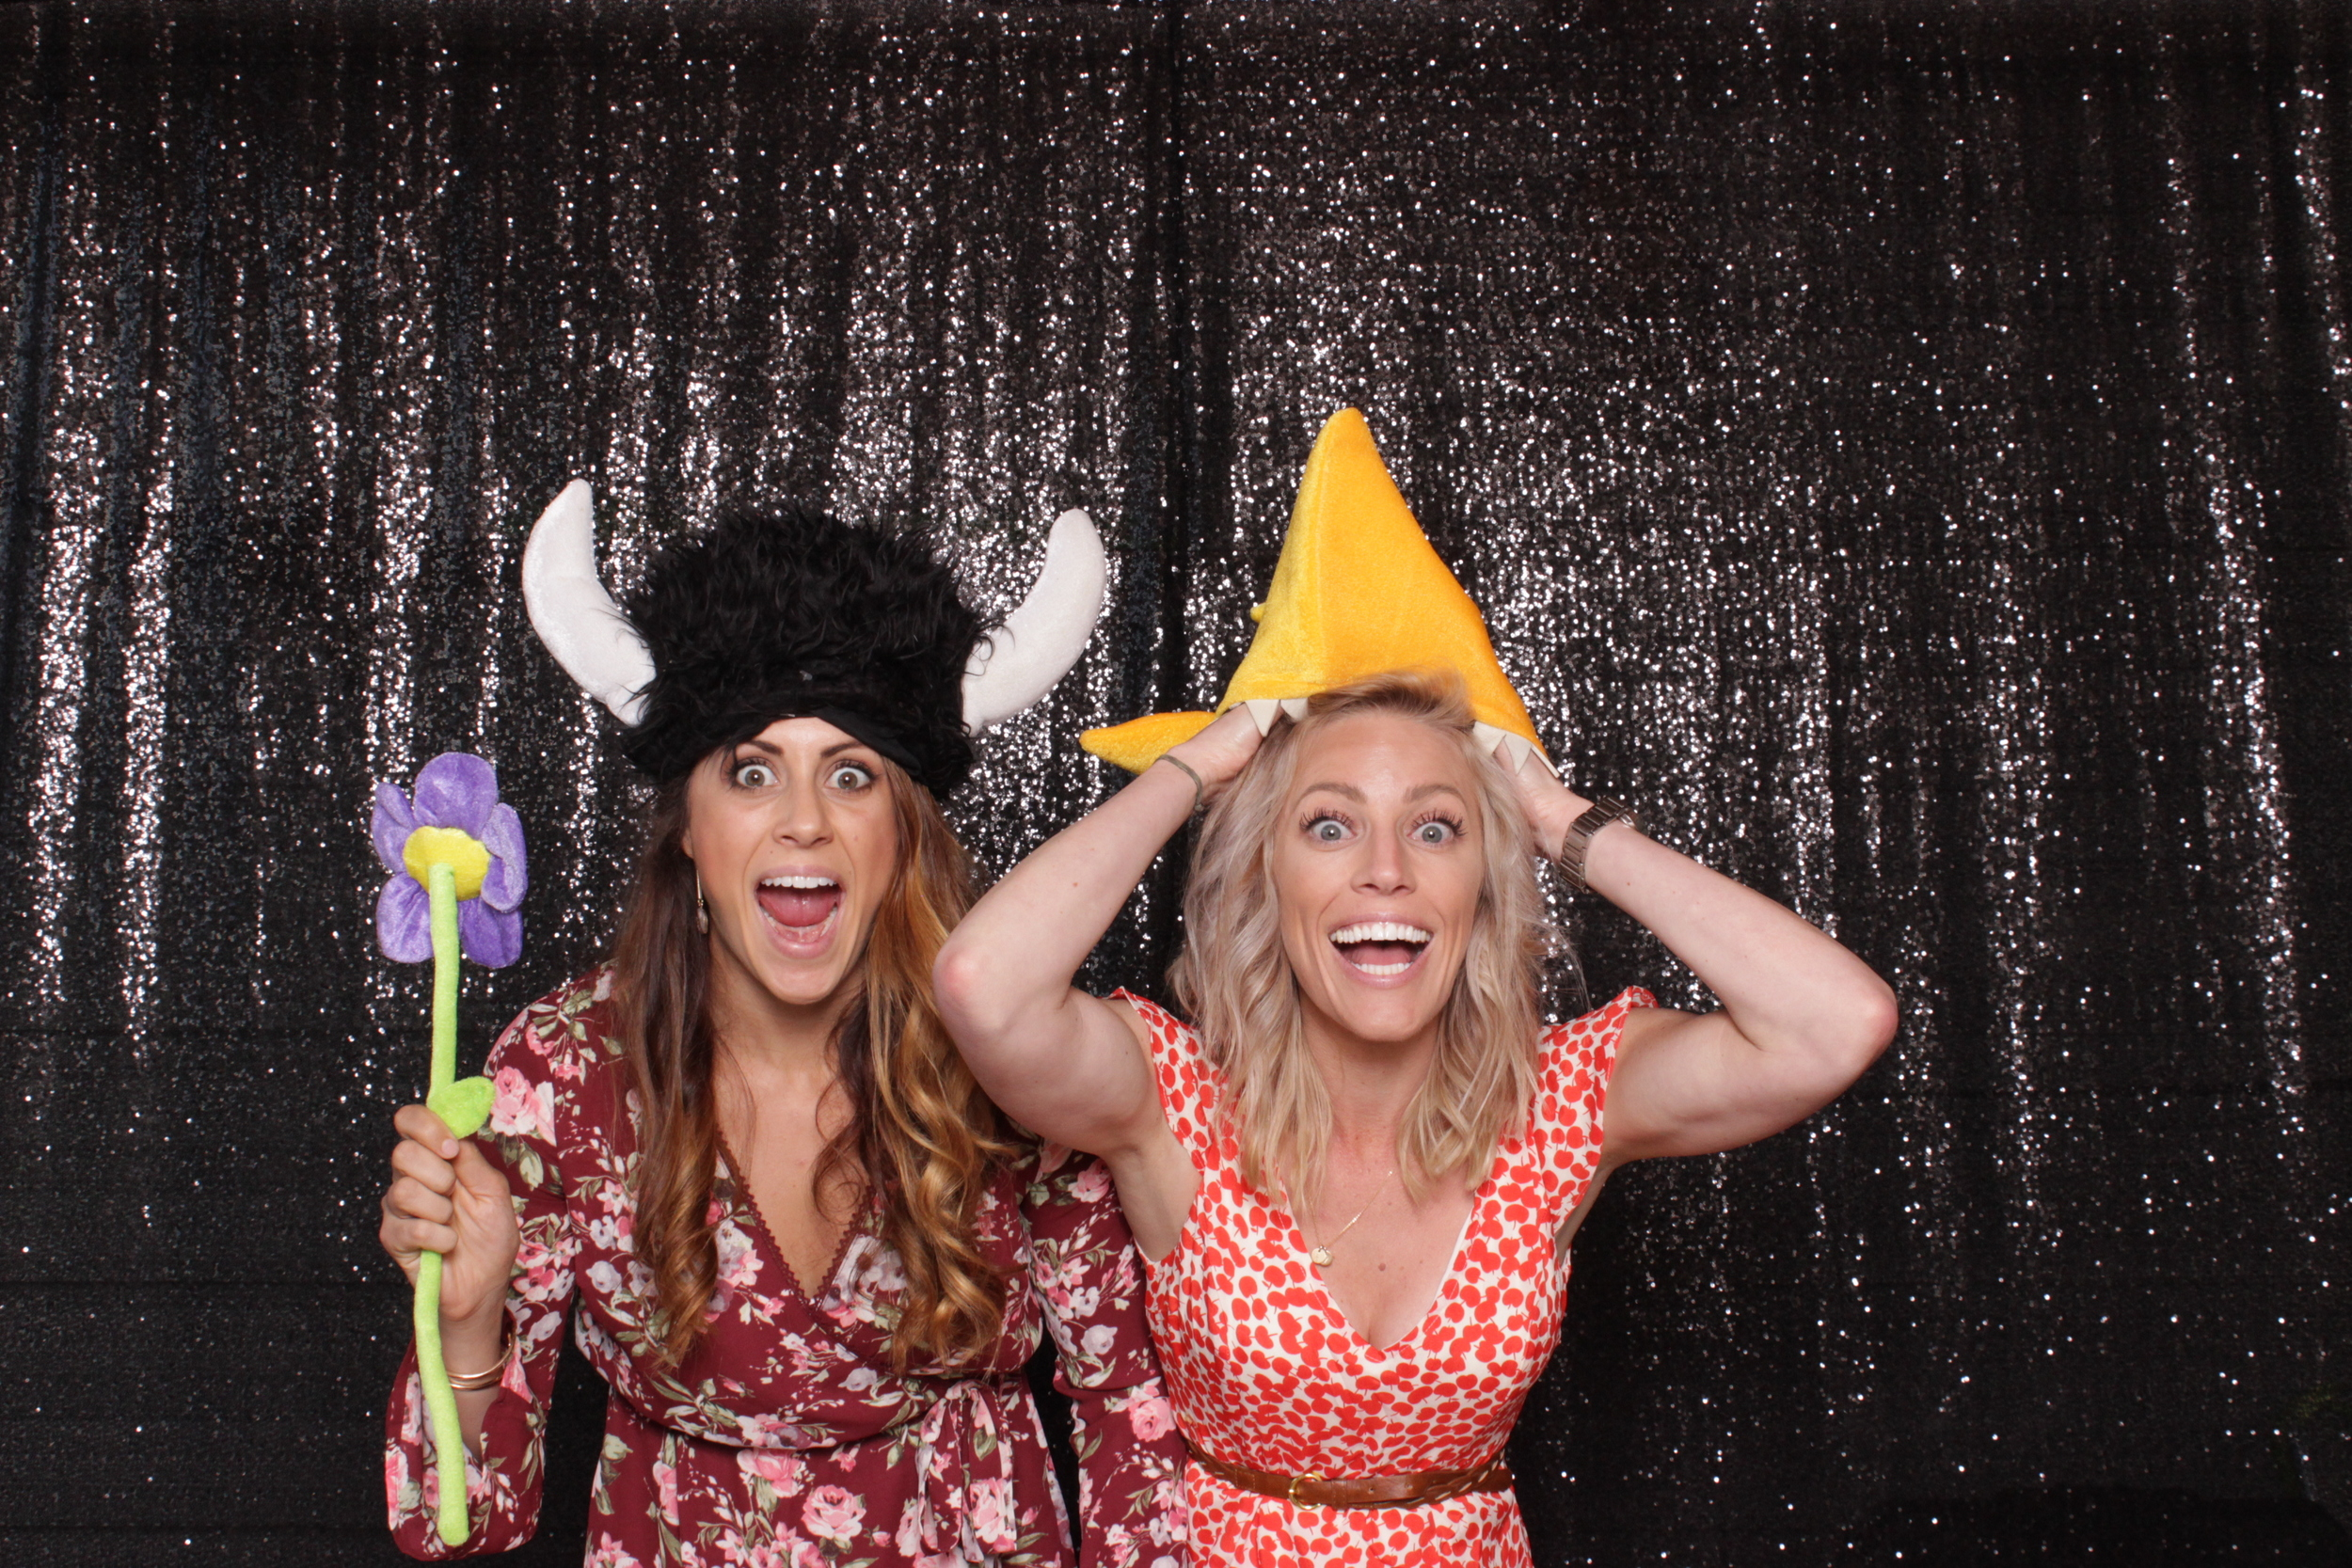 chico-open-air-photo-booth-style-fun-girls